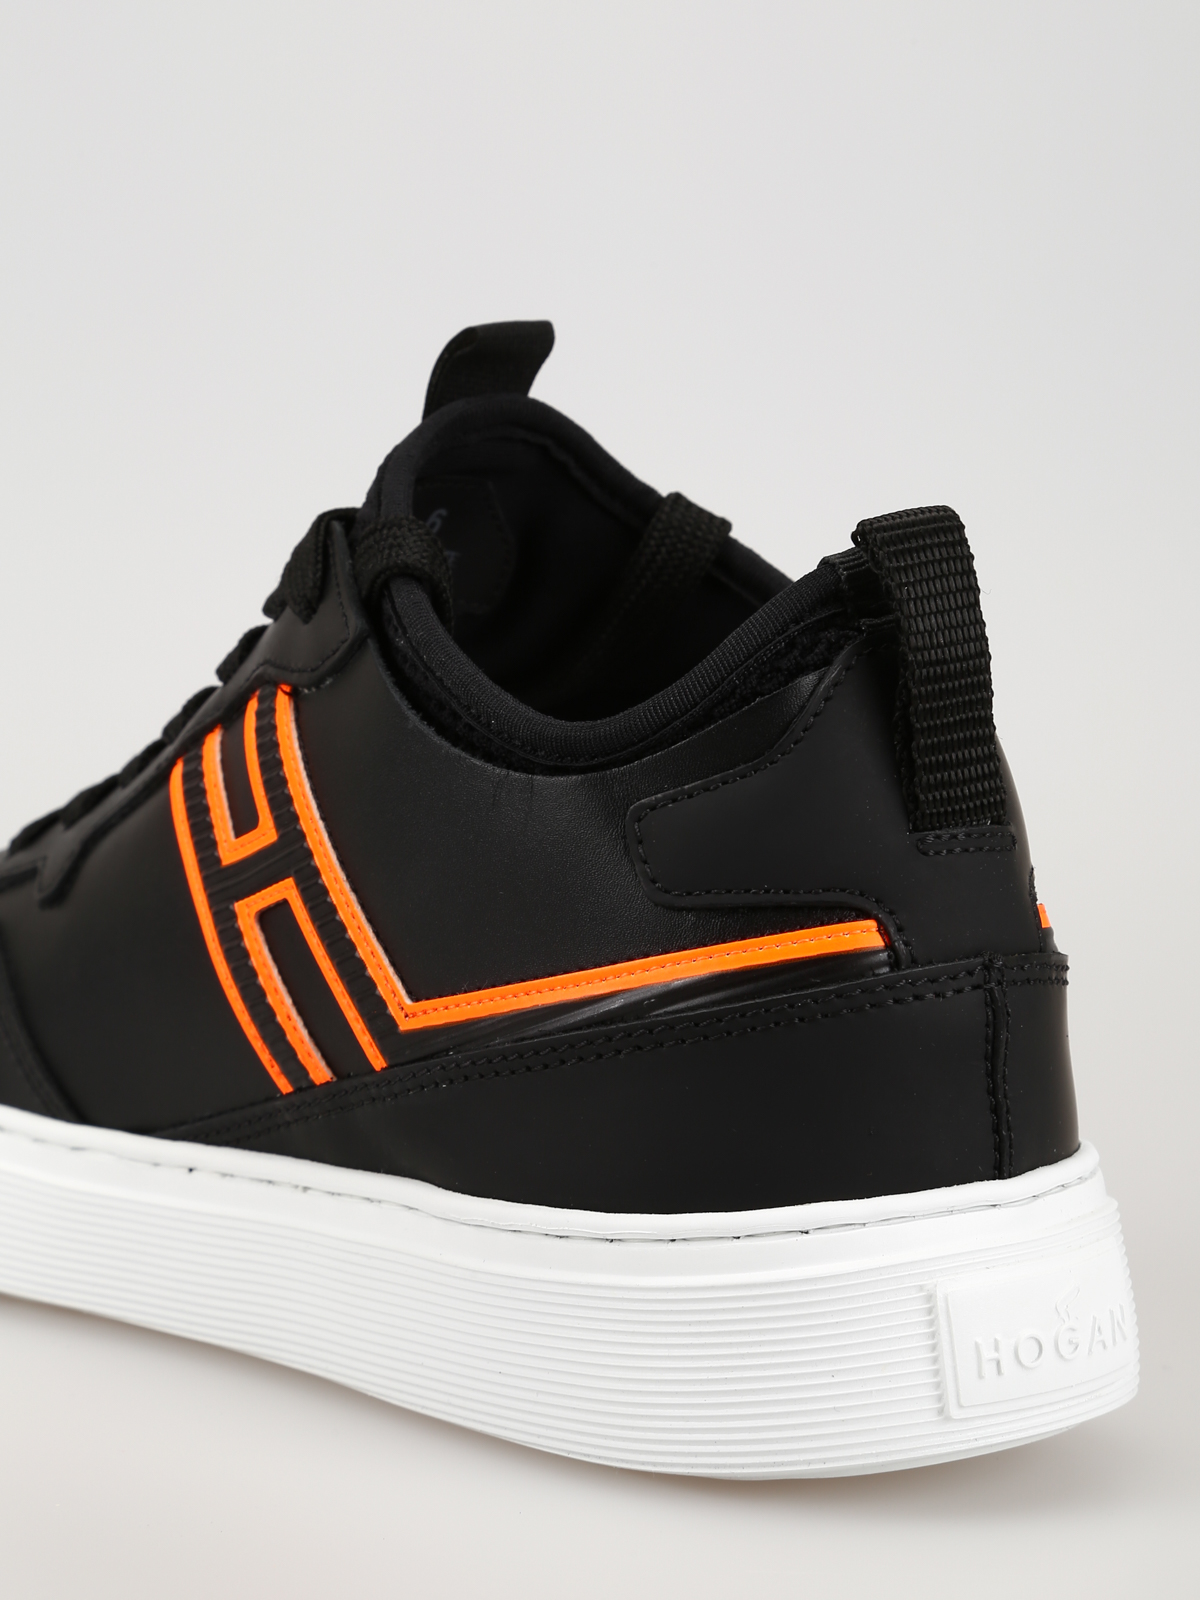 Trainers Hogan - H365 fluo detailed black sneakers ...